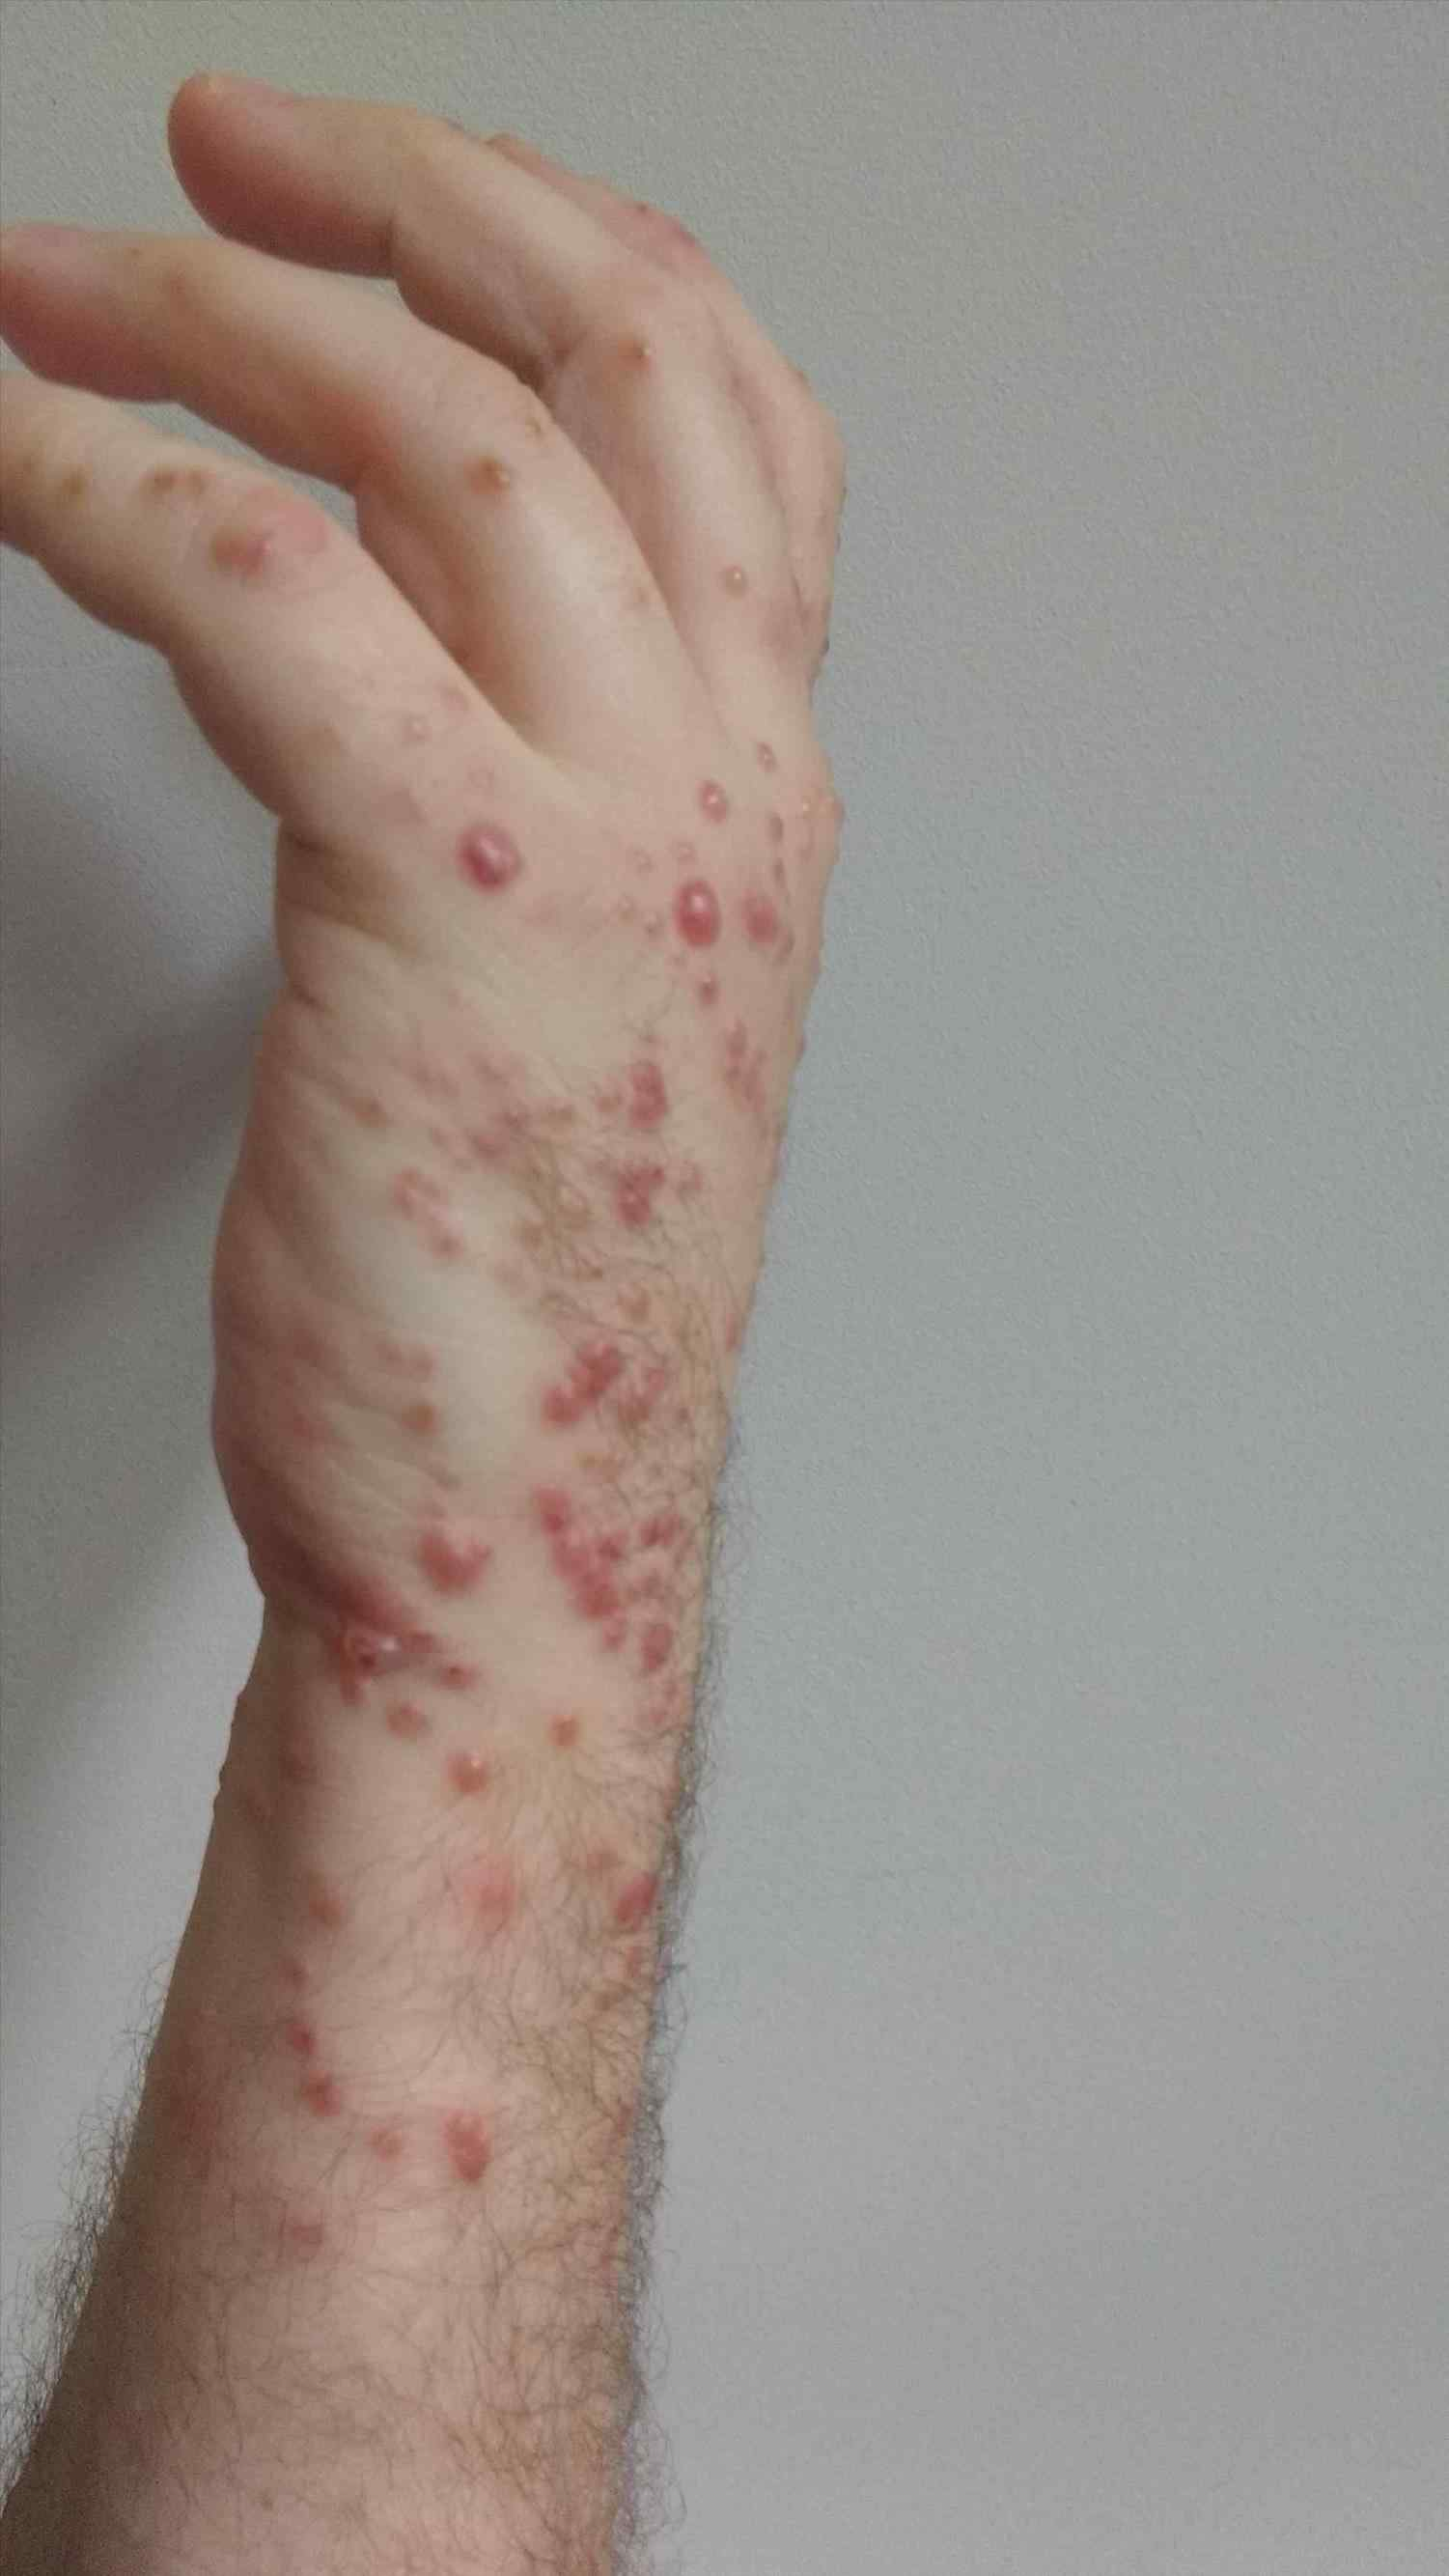 best scabies treatment clinic in bhubaneswar near me